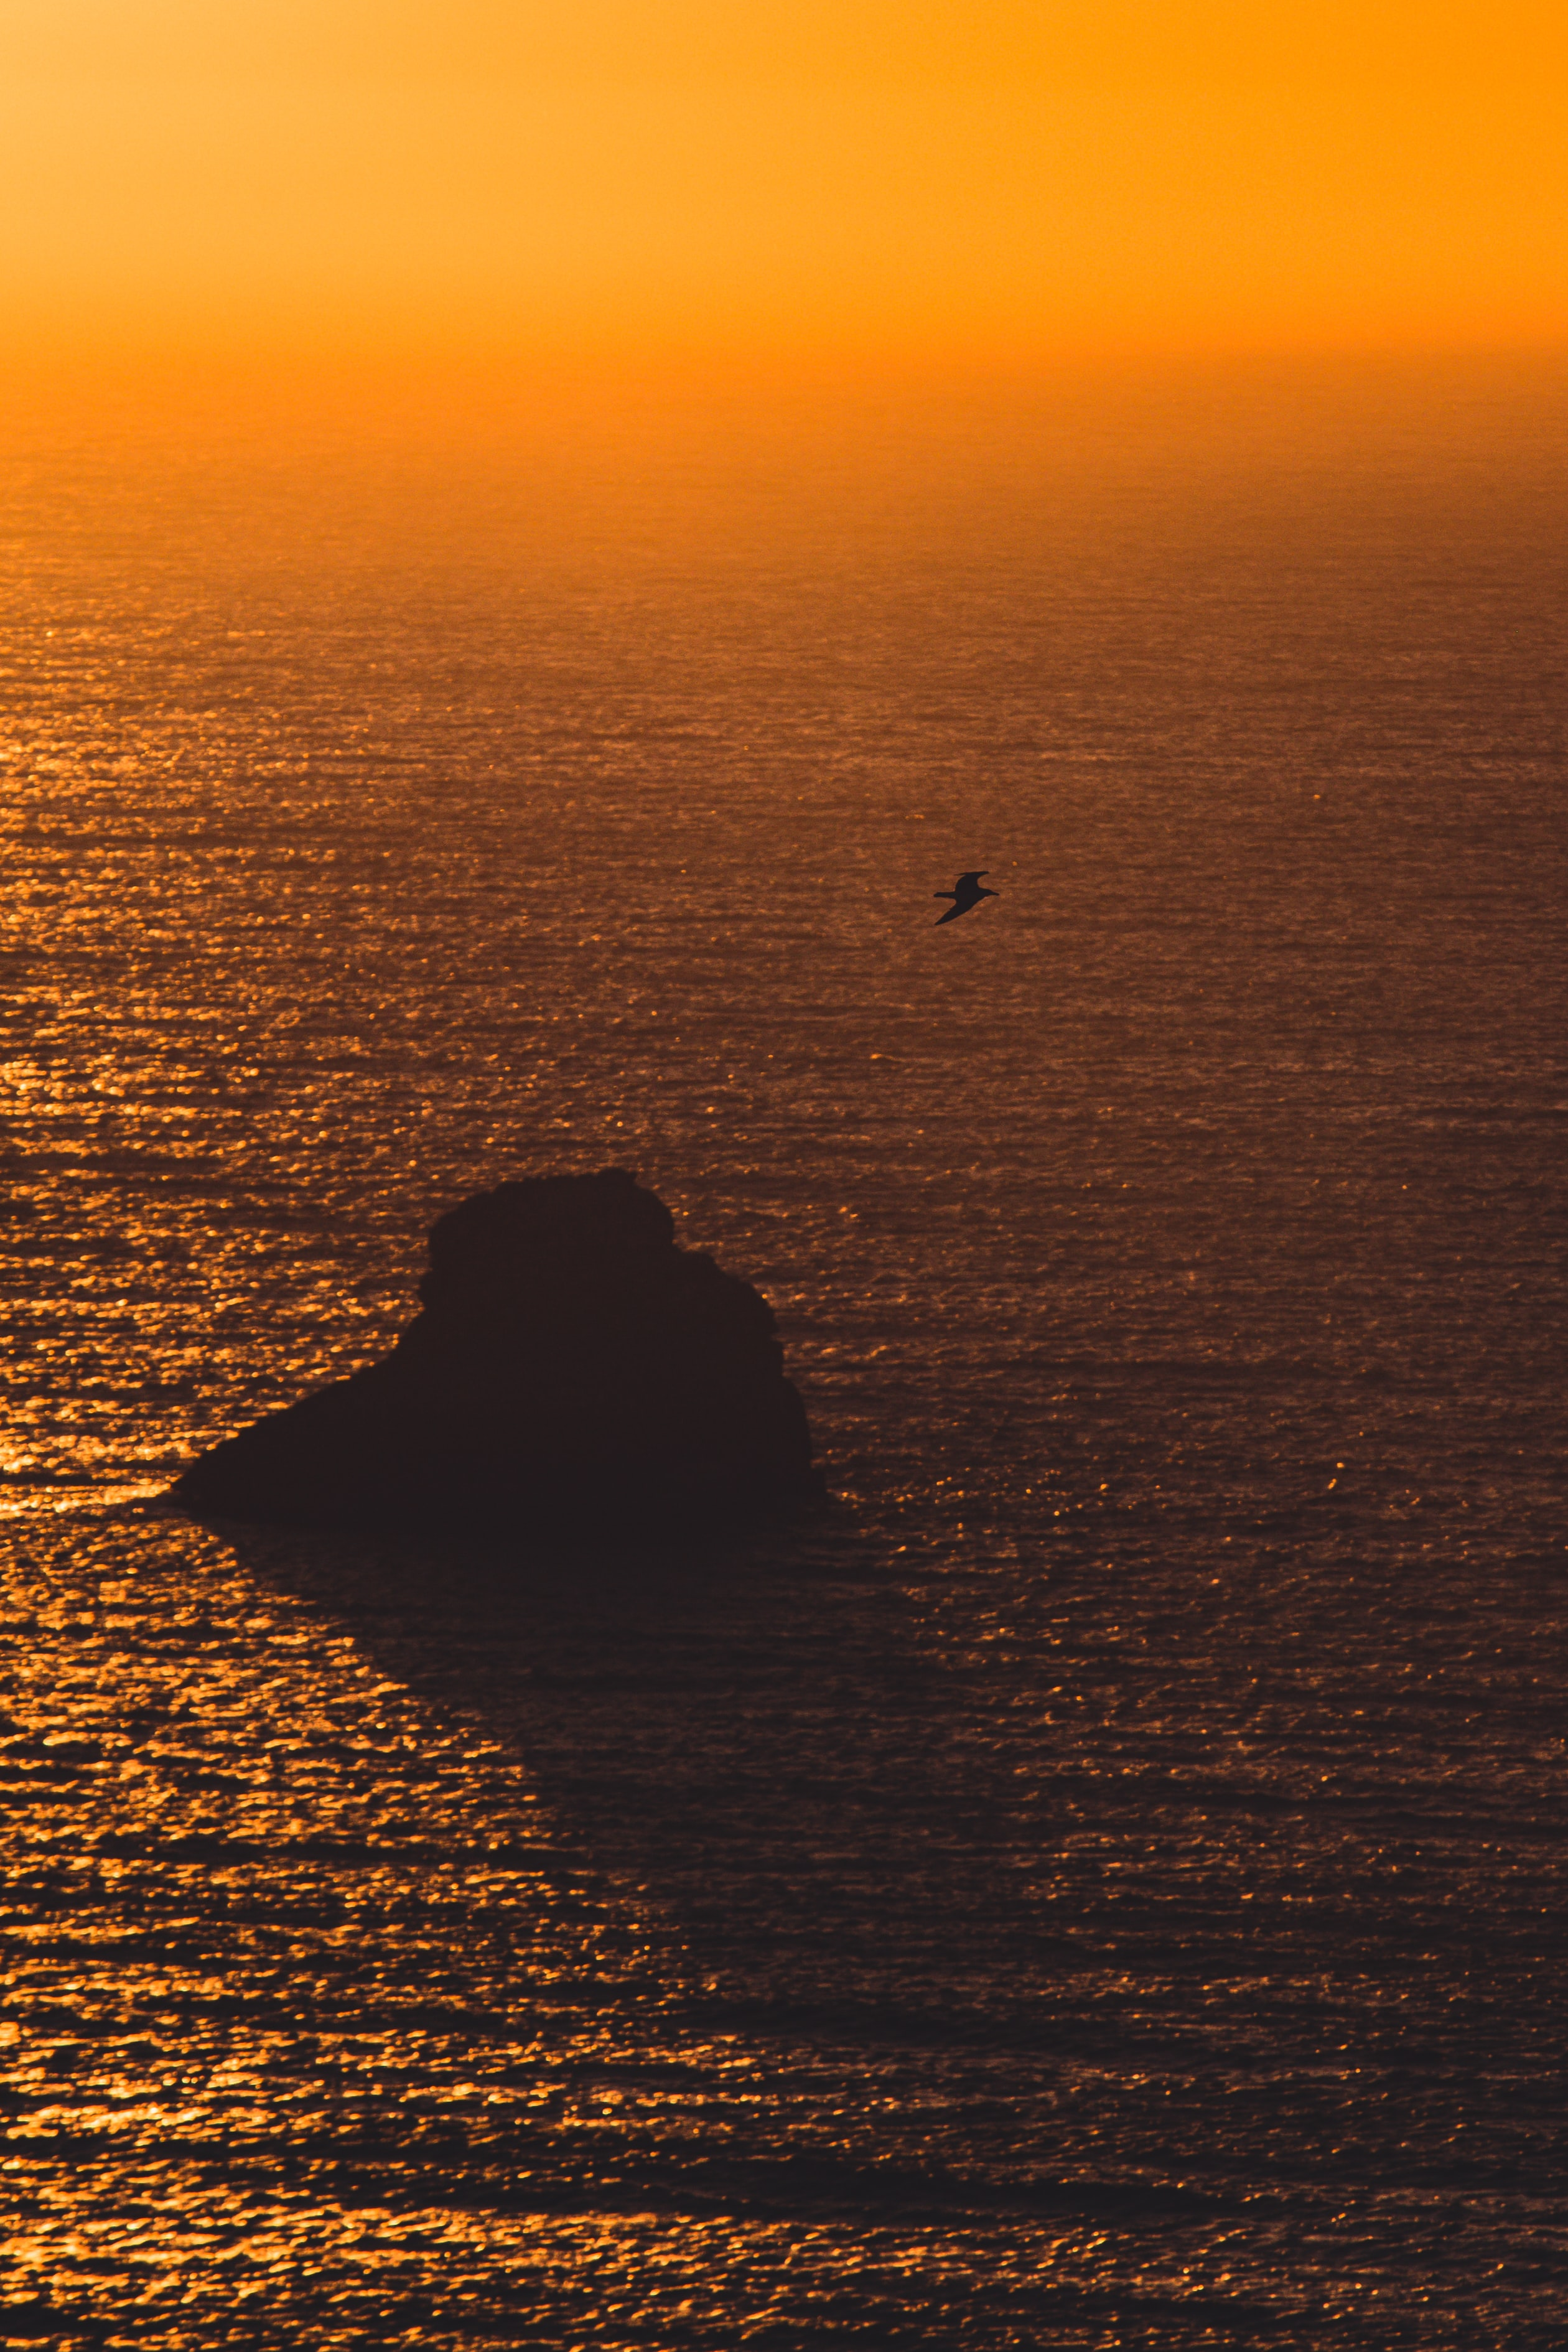 128441 download wallpaper Nature, Sea, Sunset, Rock, Gull, Seagull, Glare screensavers and pictures for free